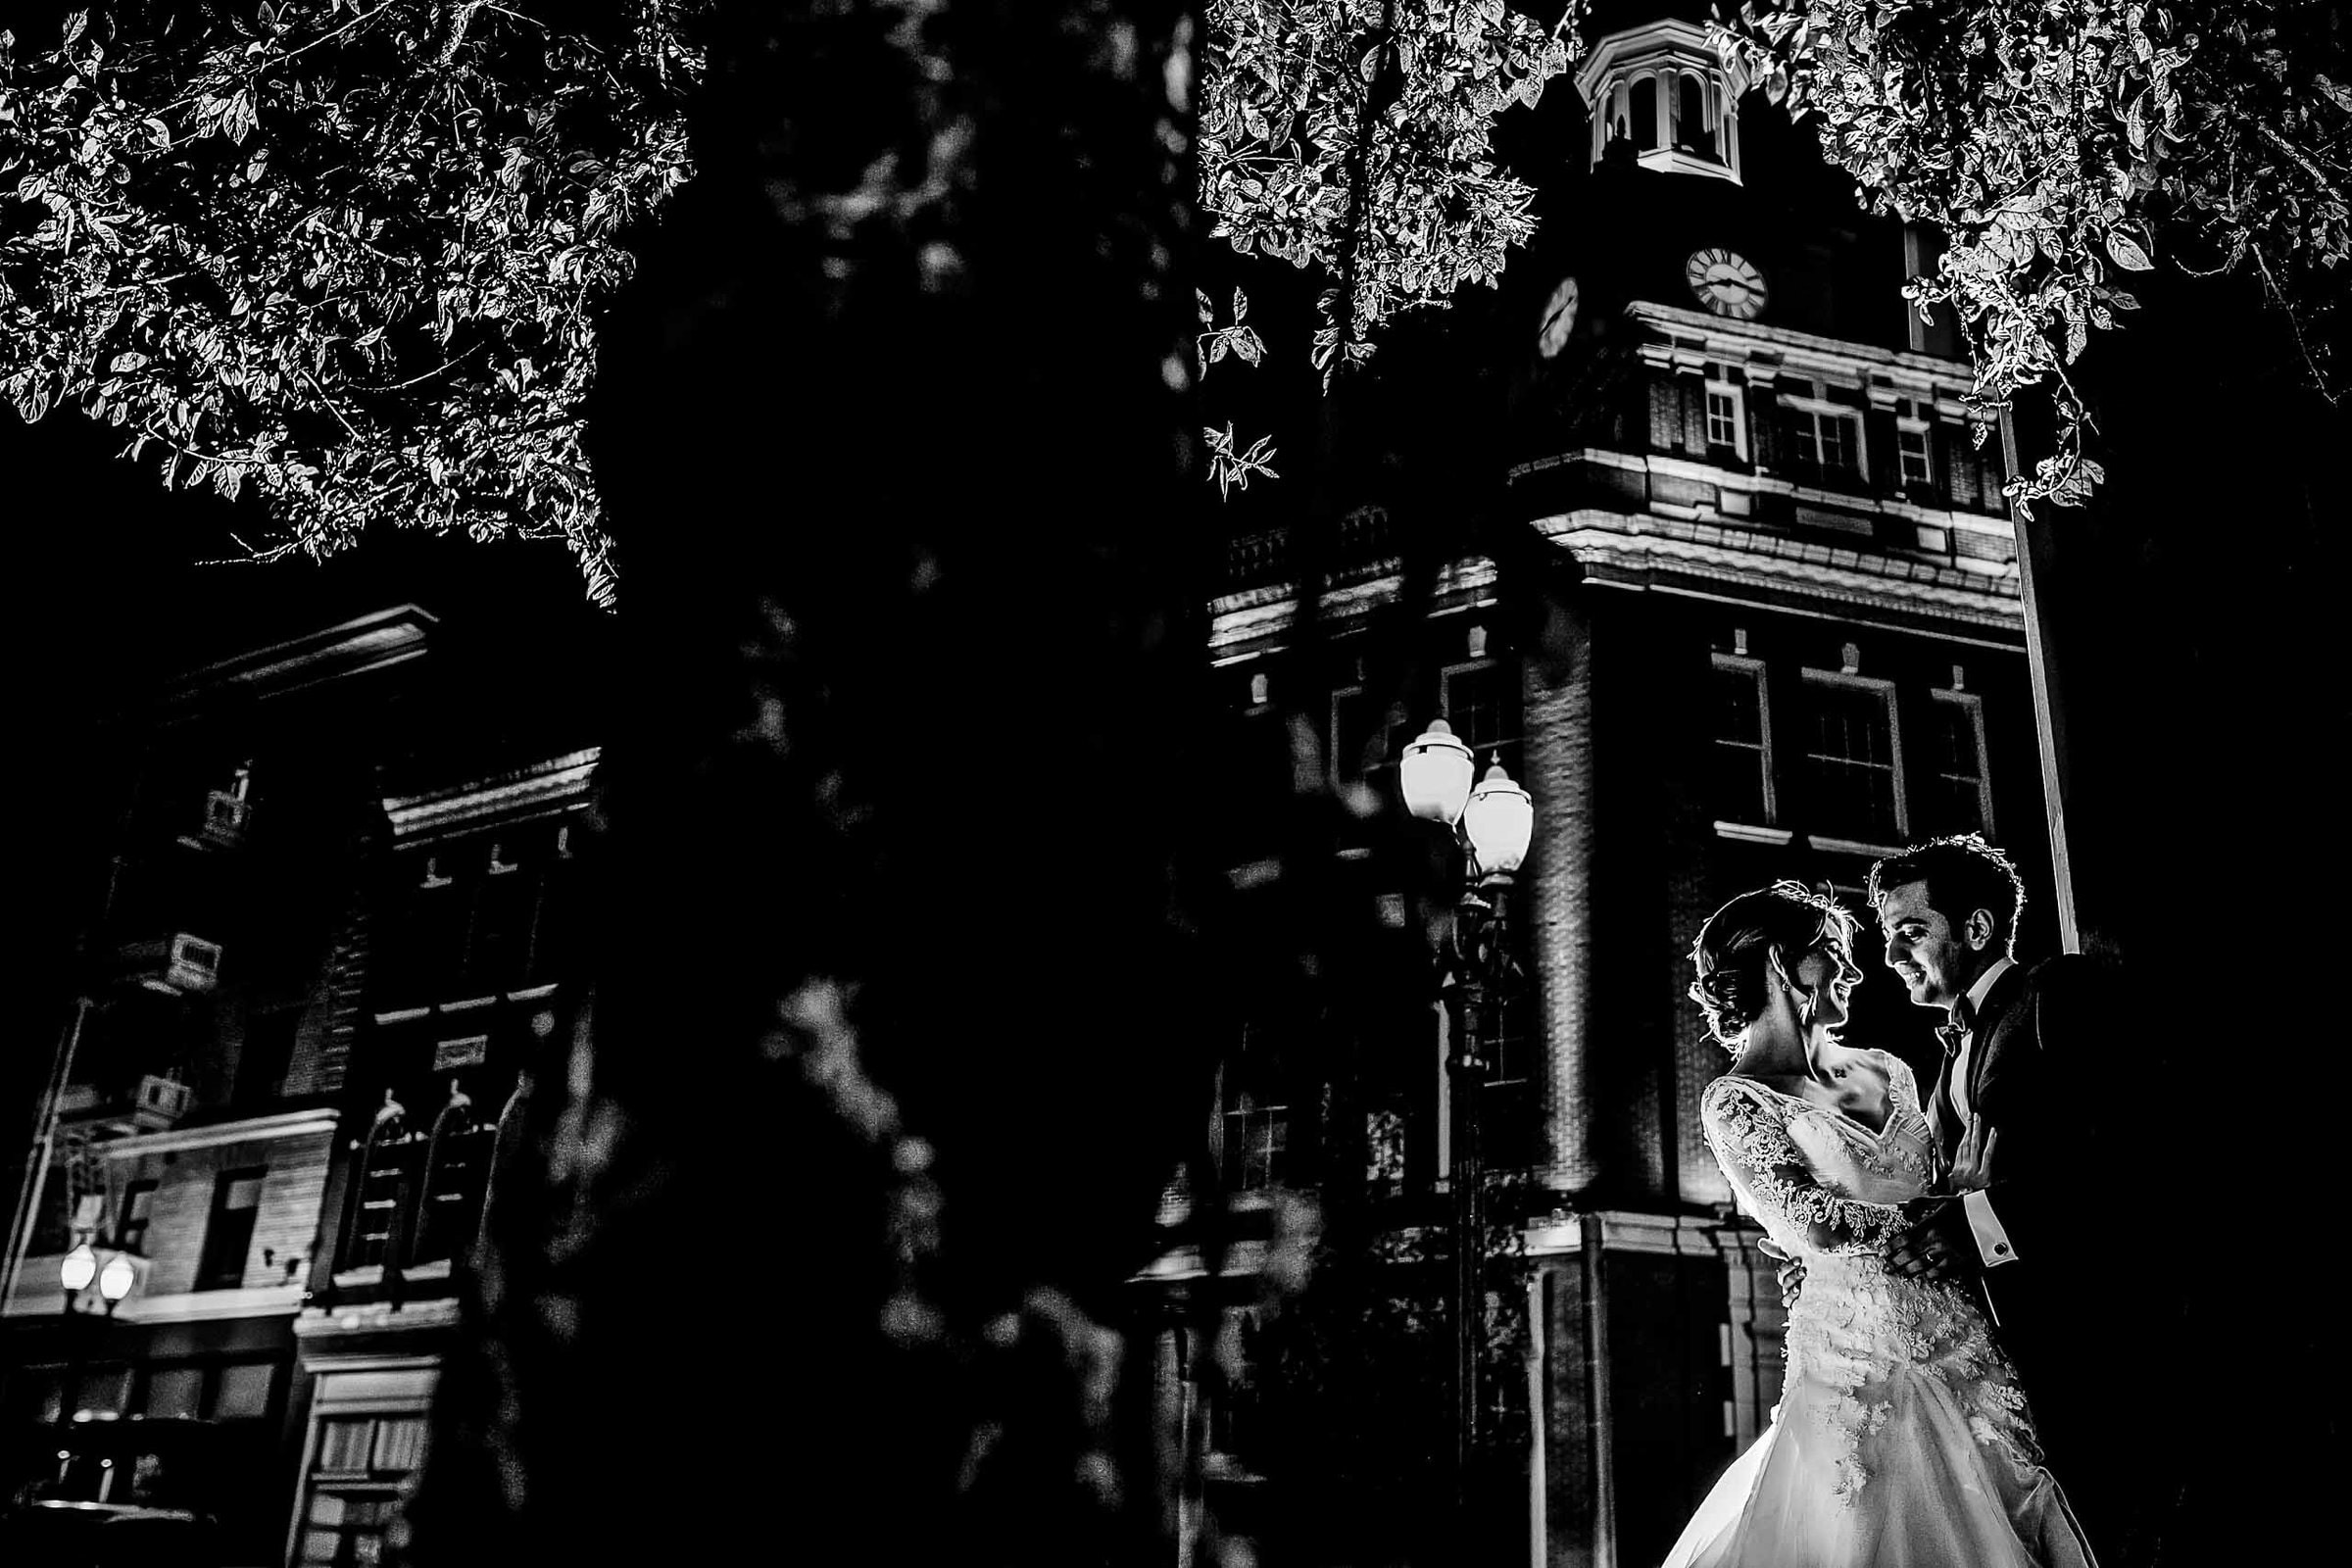 A creative night photo of a bride and groom in Portland's Park Blocks during their Portland Persian wedding at the Portland Art Museum